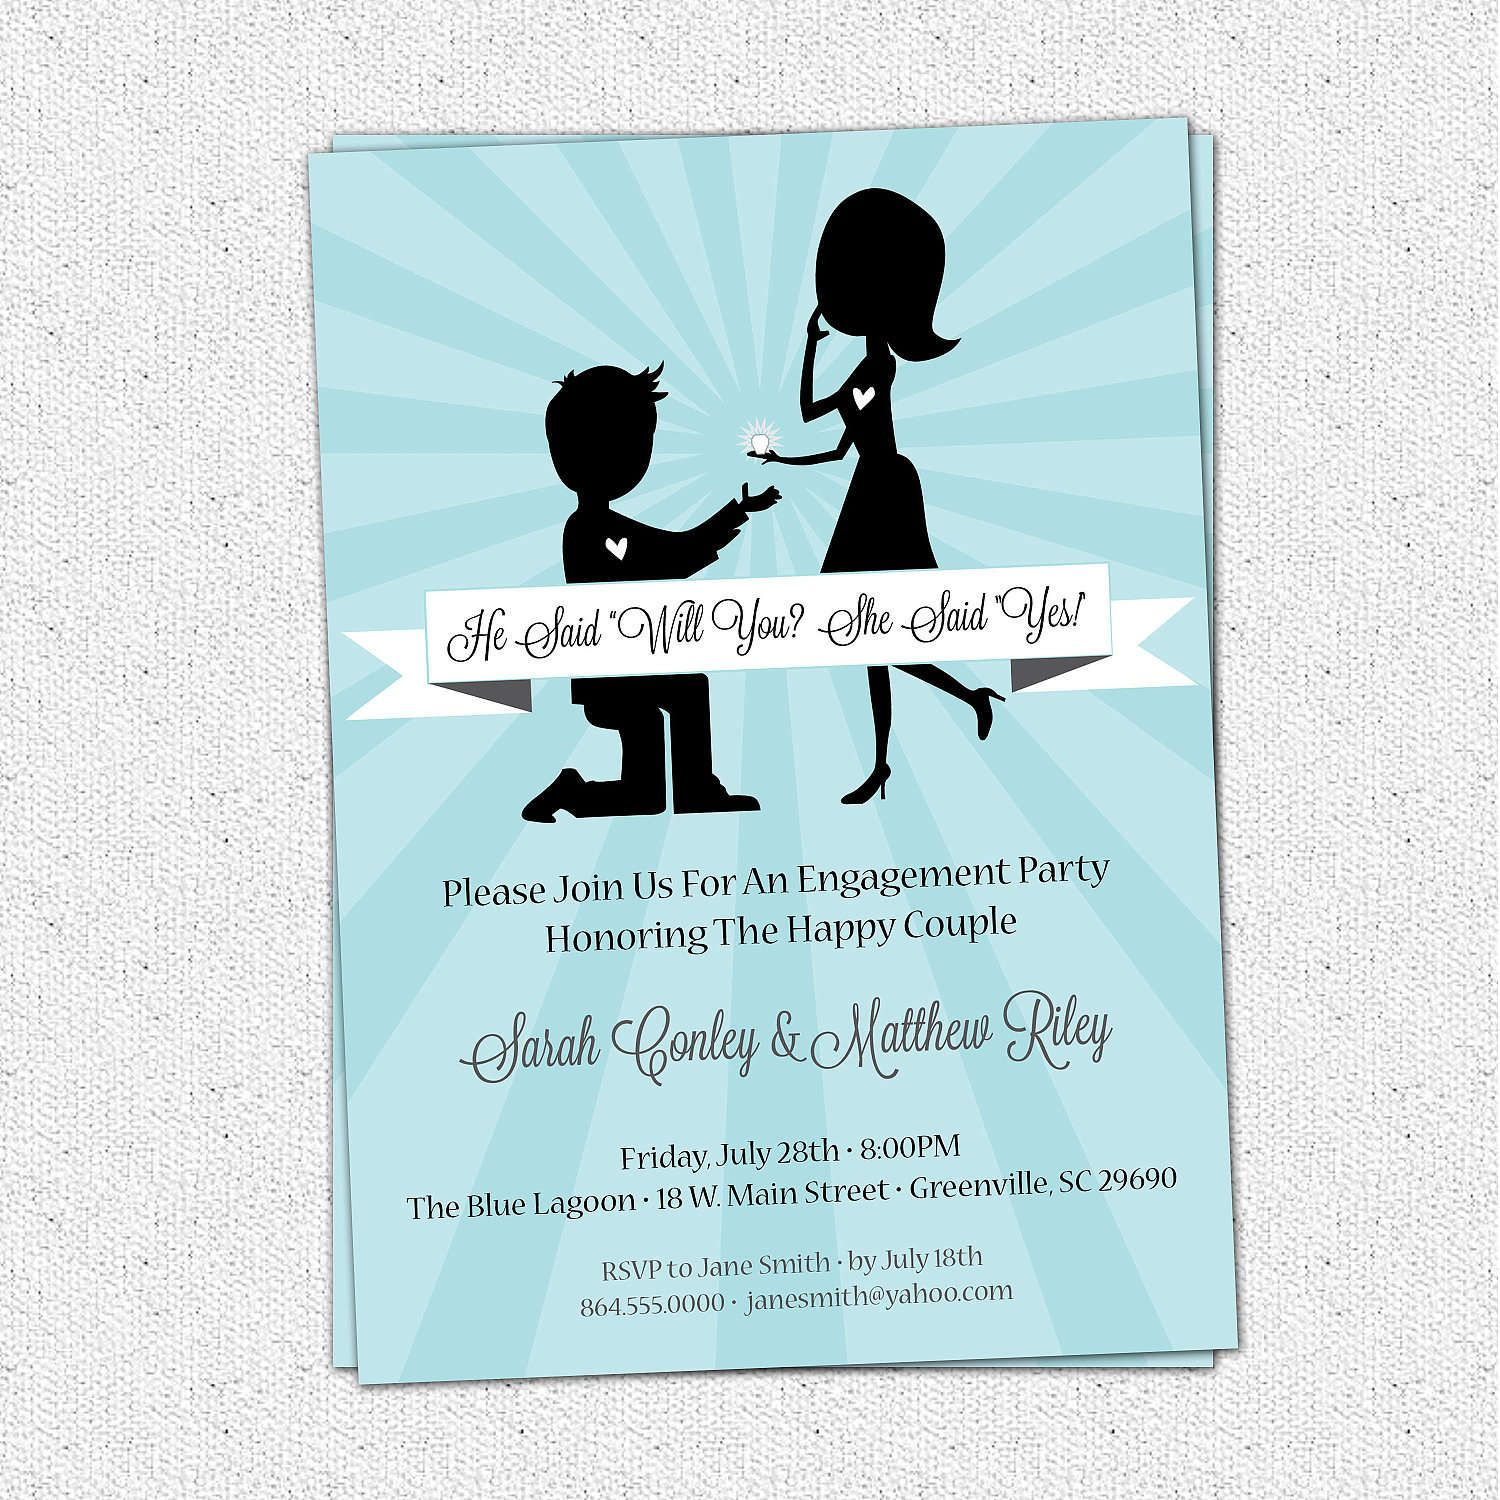 17 Best images about engagement invitations – Funny Engagement Party Invitation Wording